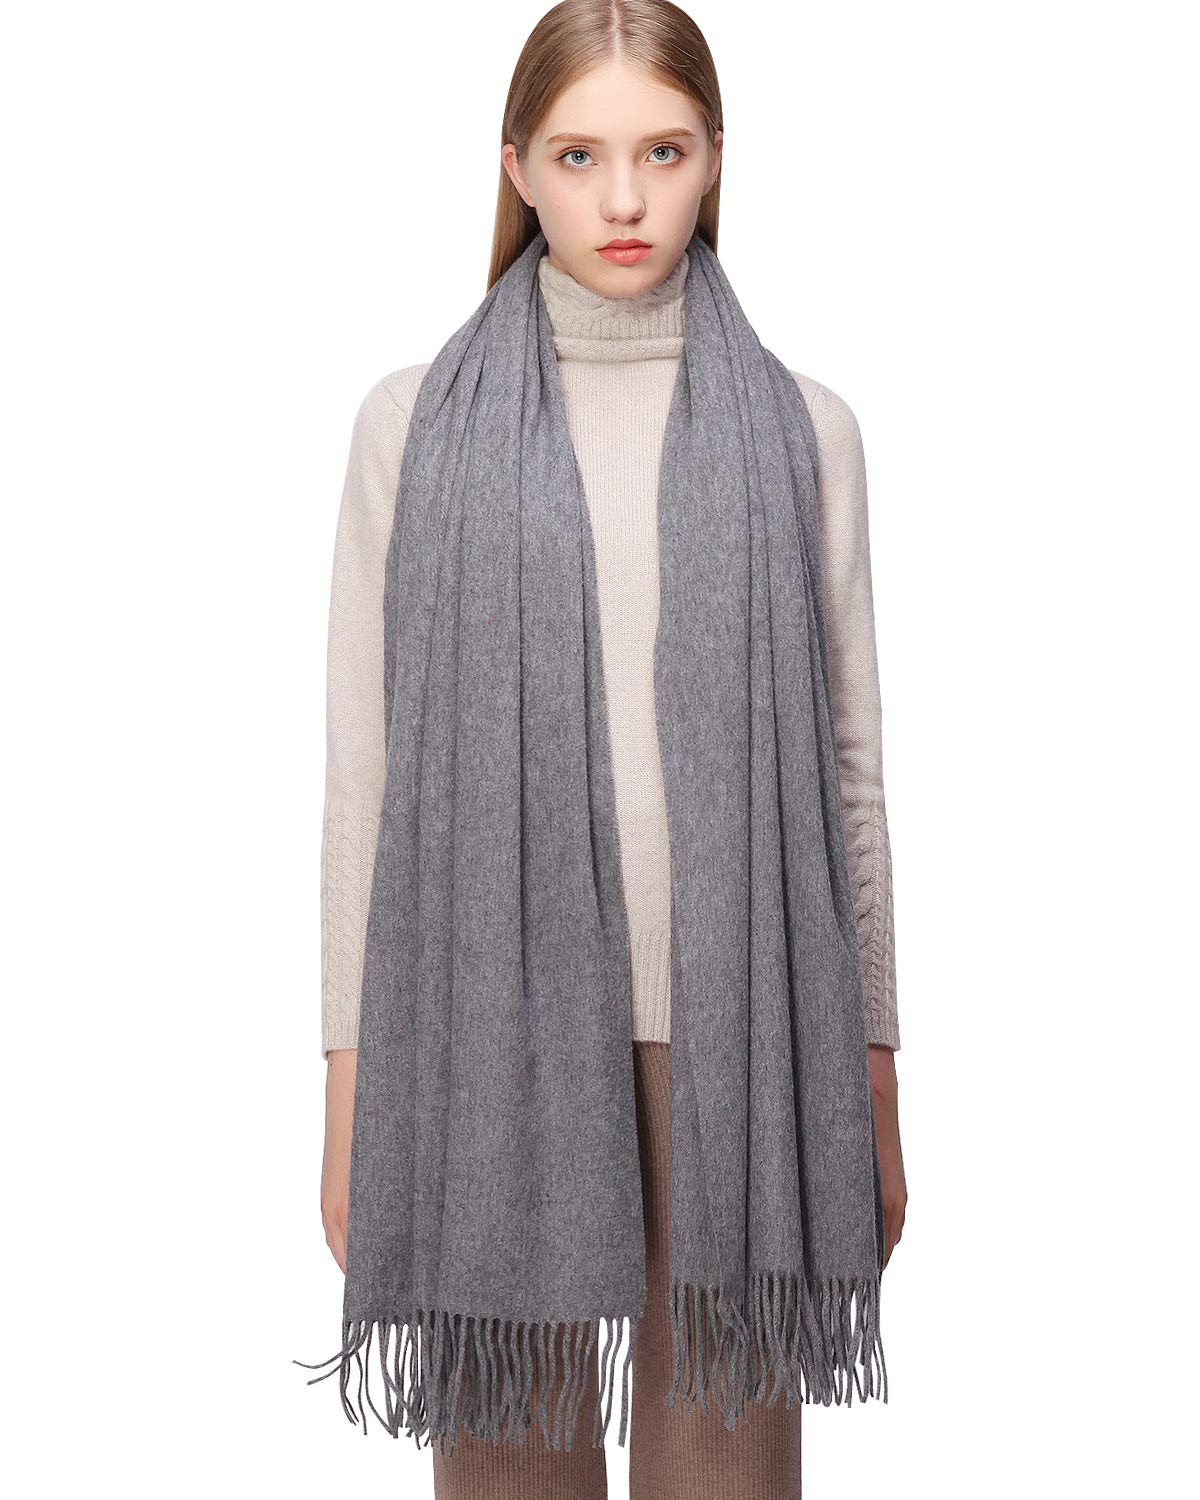 100% Cashmere Scarf Pashmina Shawls and Wraps for Women Warm Winter More Thicker Soft Scarves Grey by RIIQIICHY